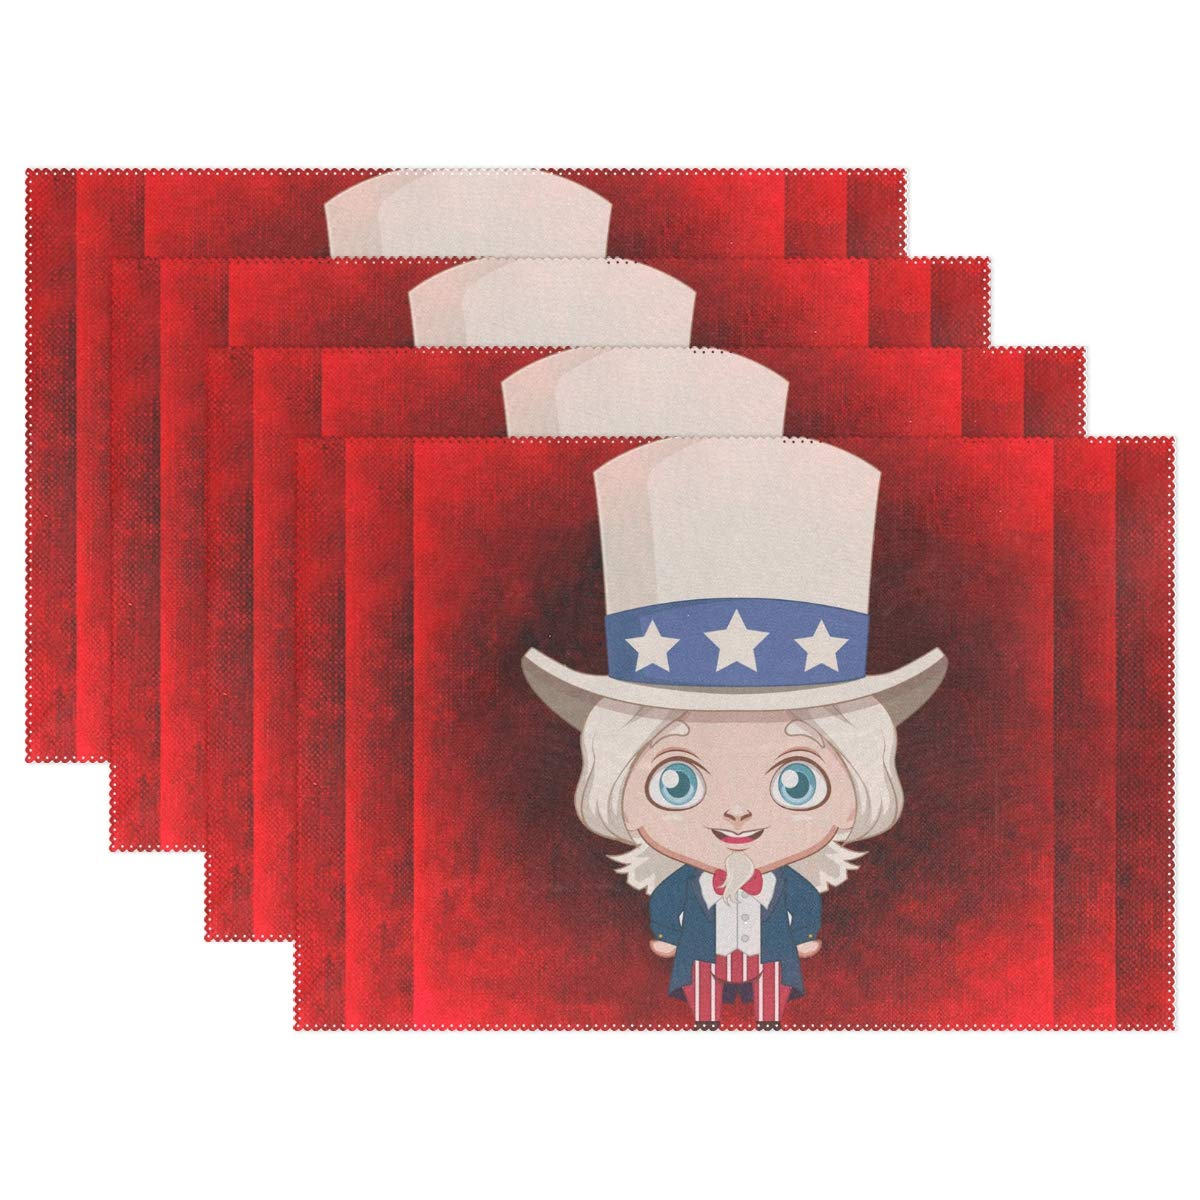 Hulahula Red America Boy Placemats Set of 4 Heat Wrinkle Resistant Antiskid Table Mats Decoration for Dinner Kitchen Table